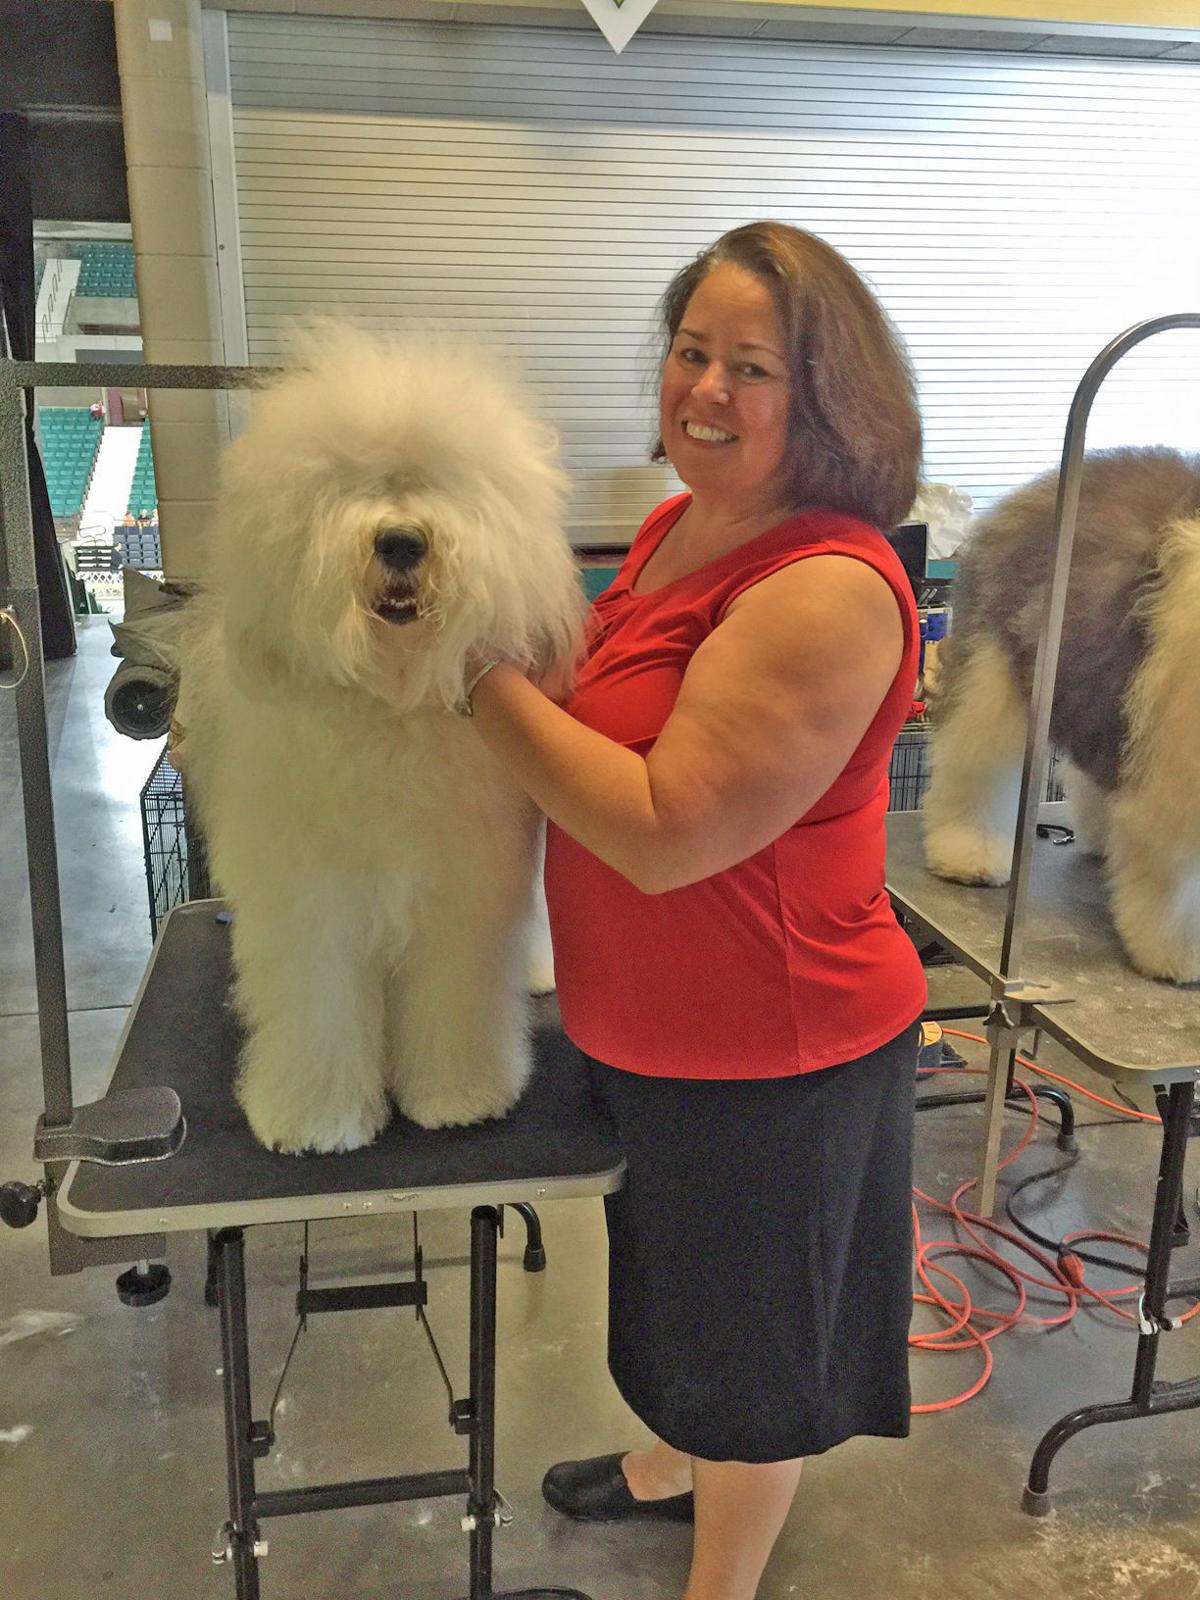 Running with the big dogs: Fargo woman is in pit crew for